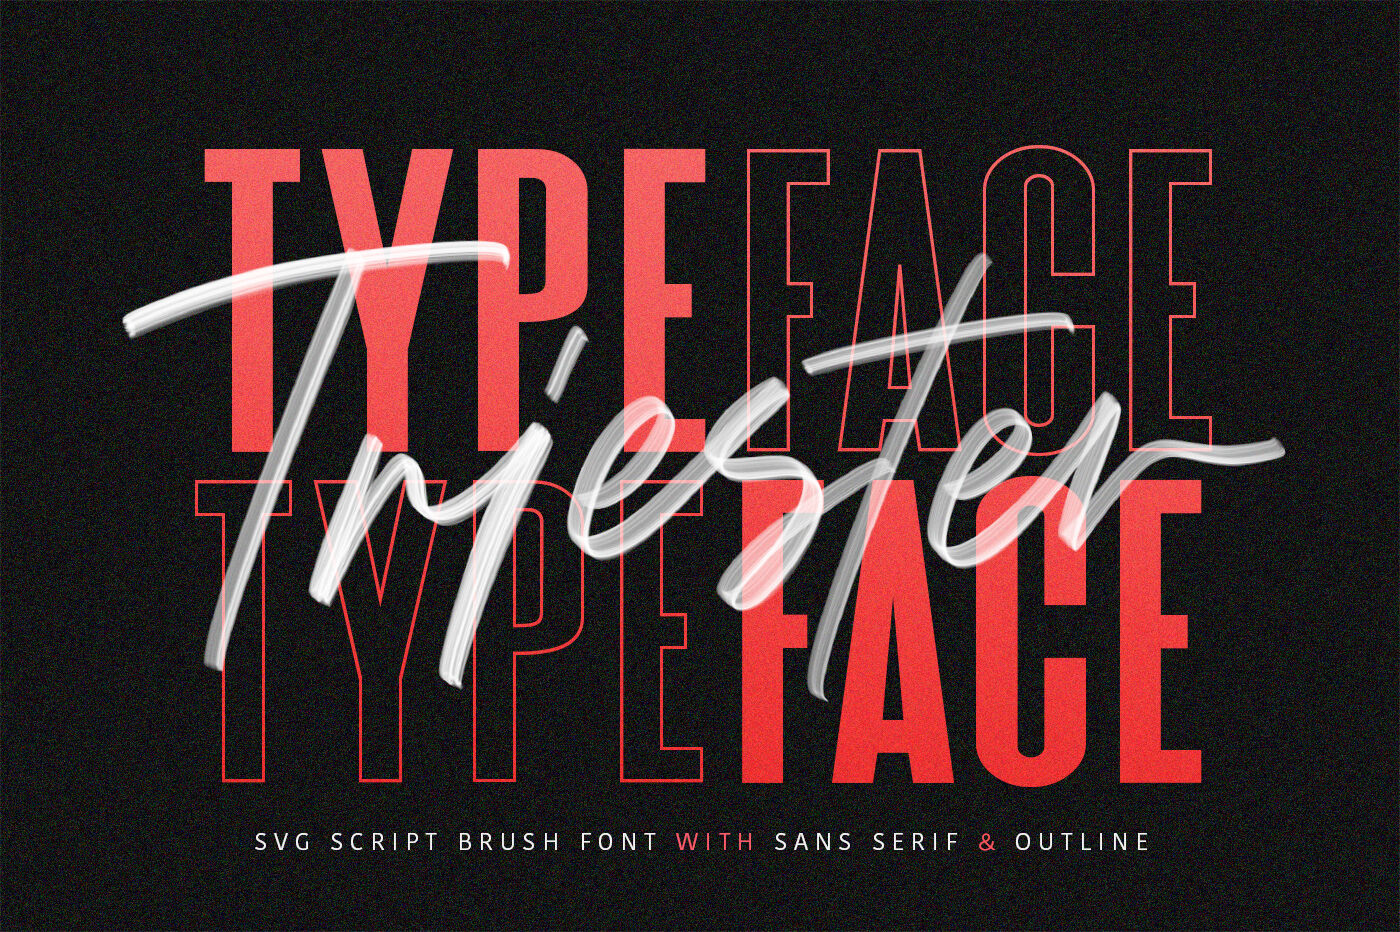 Triester Svg Brush Font Free Sans By Maulana Creative